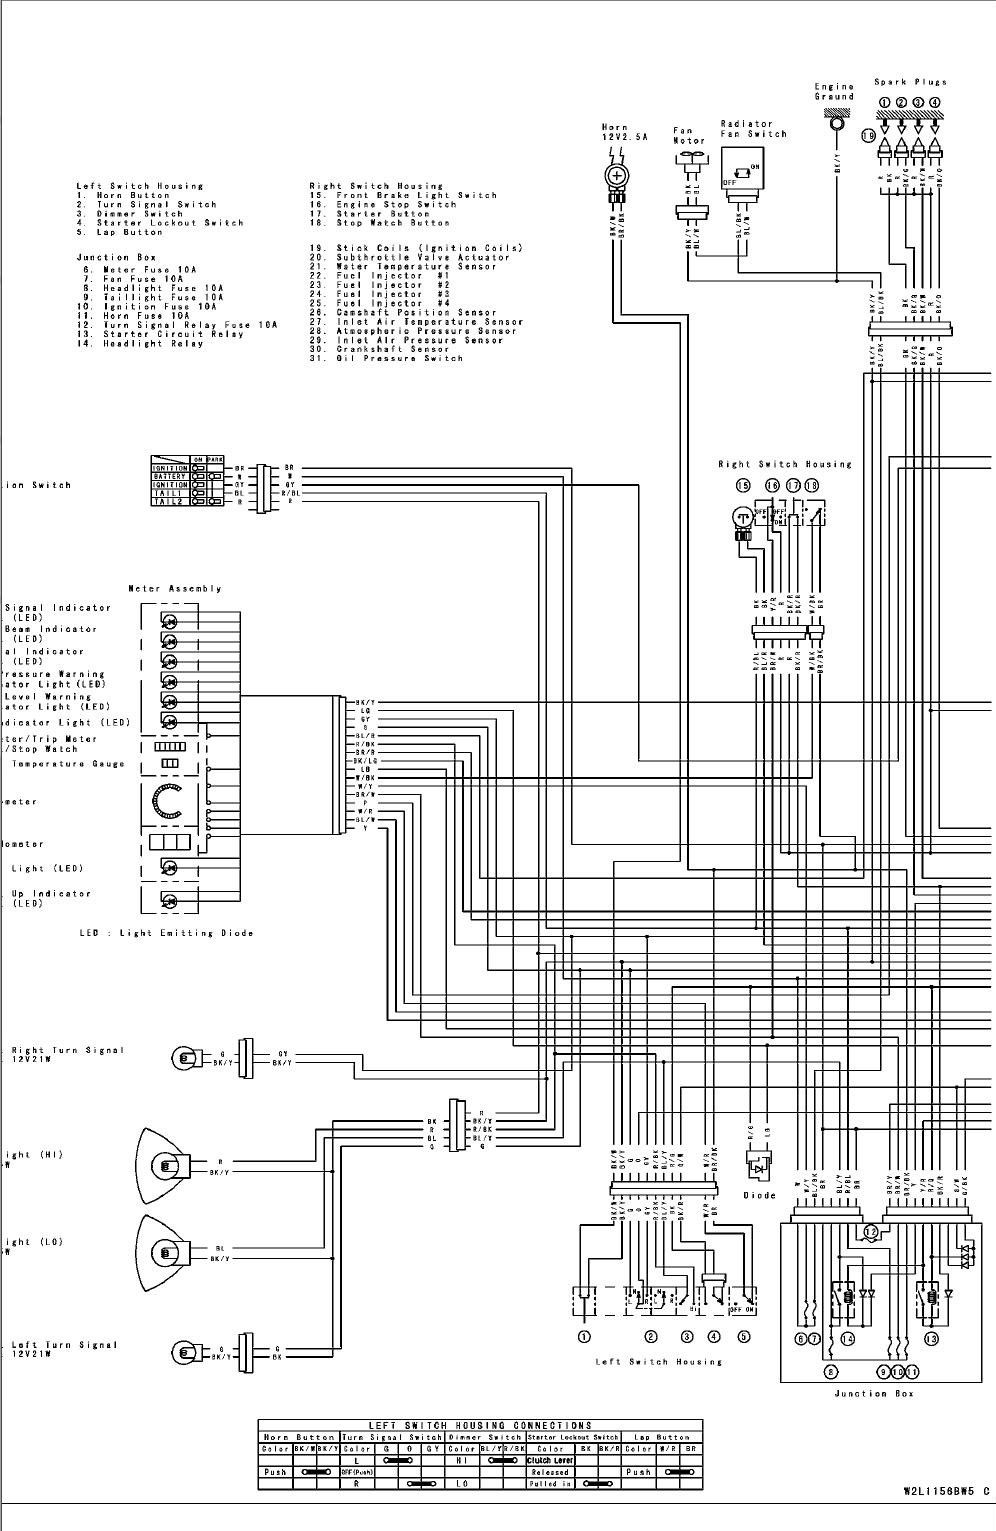 2004 Zx6r Wiring Diagram - Wiring Diagram M2 Kawasaki Ninja Ignition Wiring Diagram on